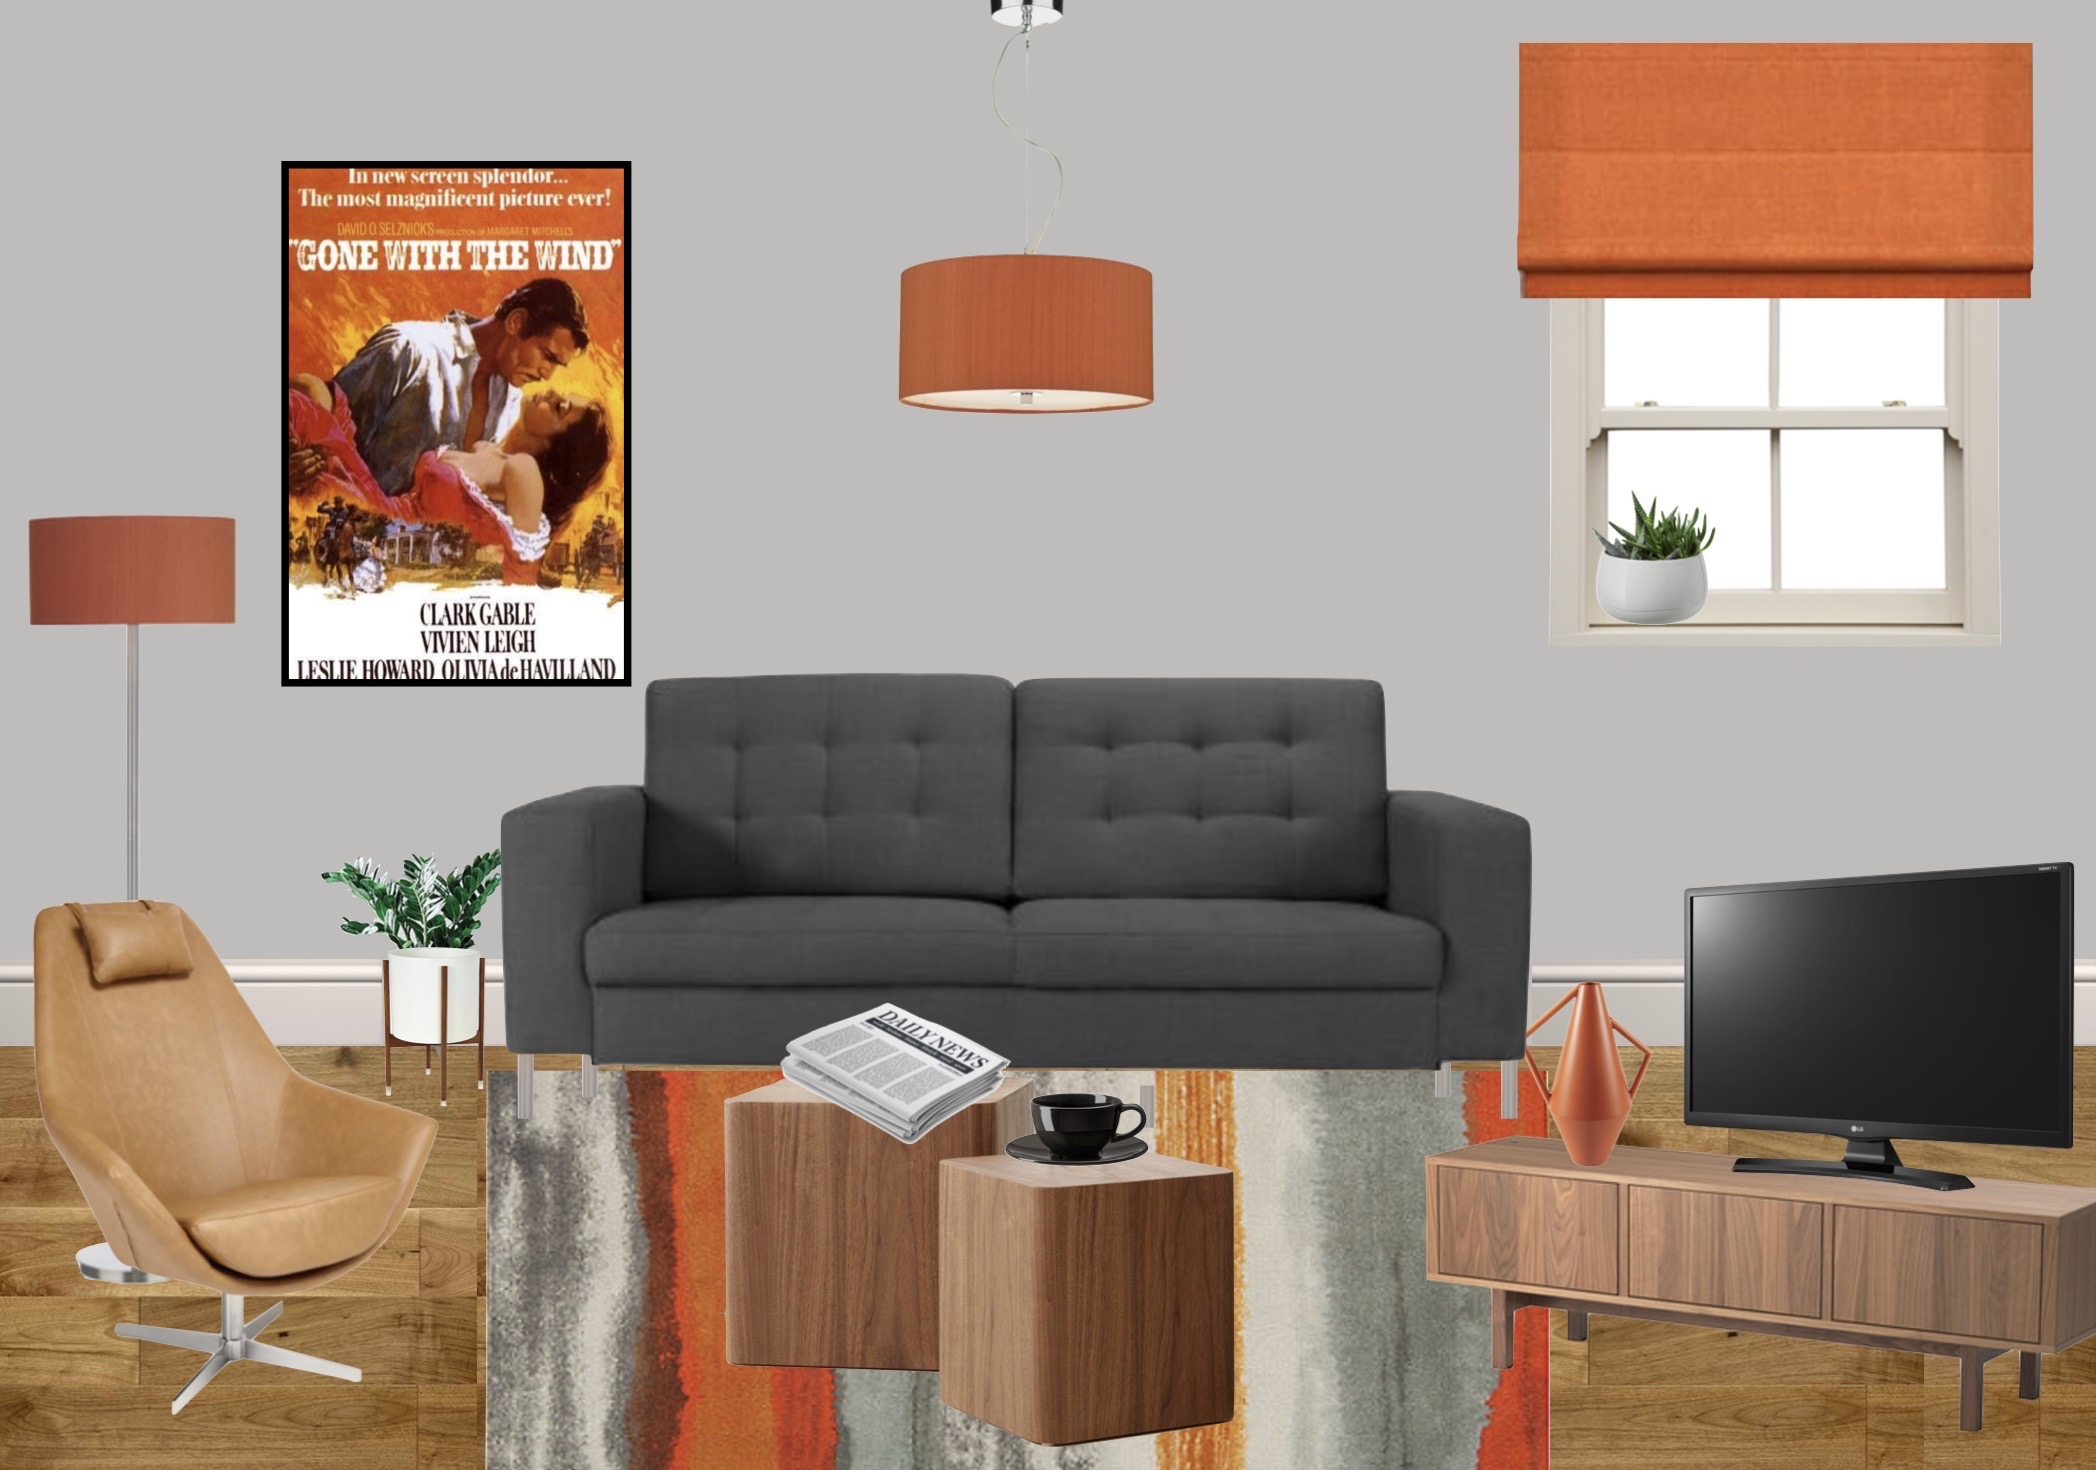 Moodboard for show home living room with contemporary midcentury modern feel